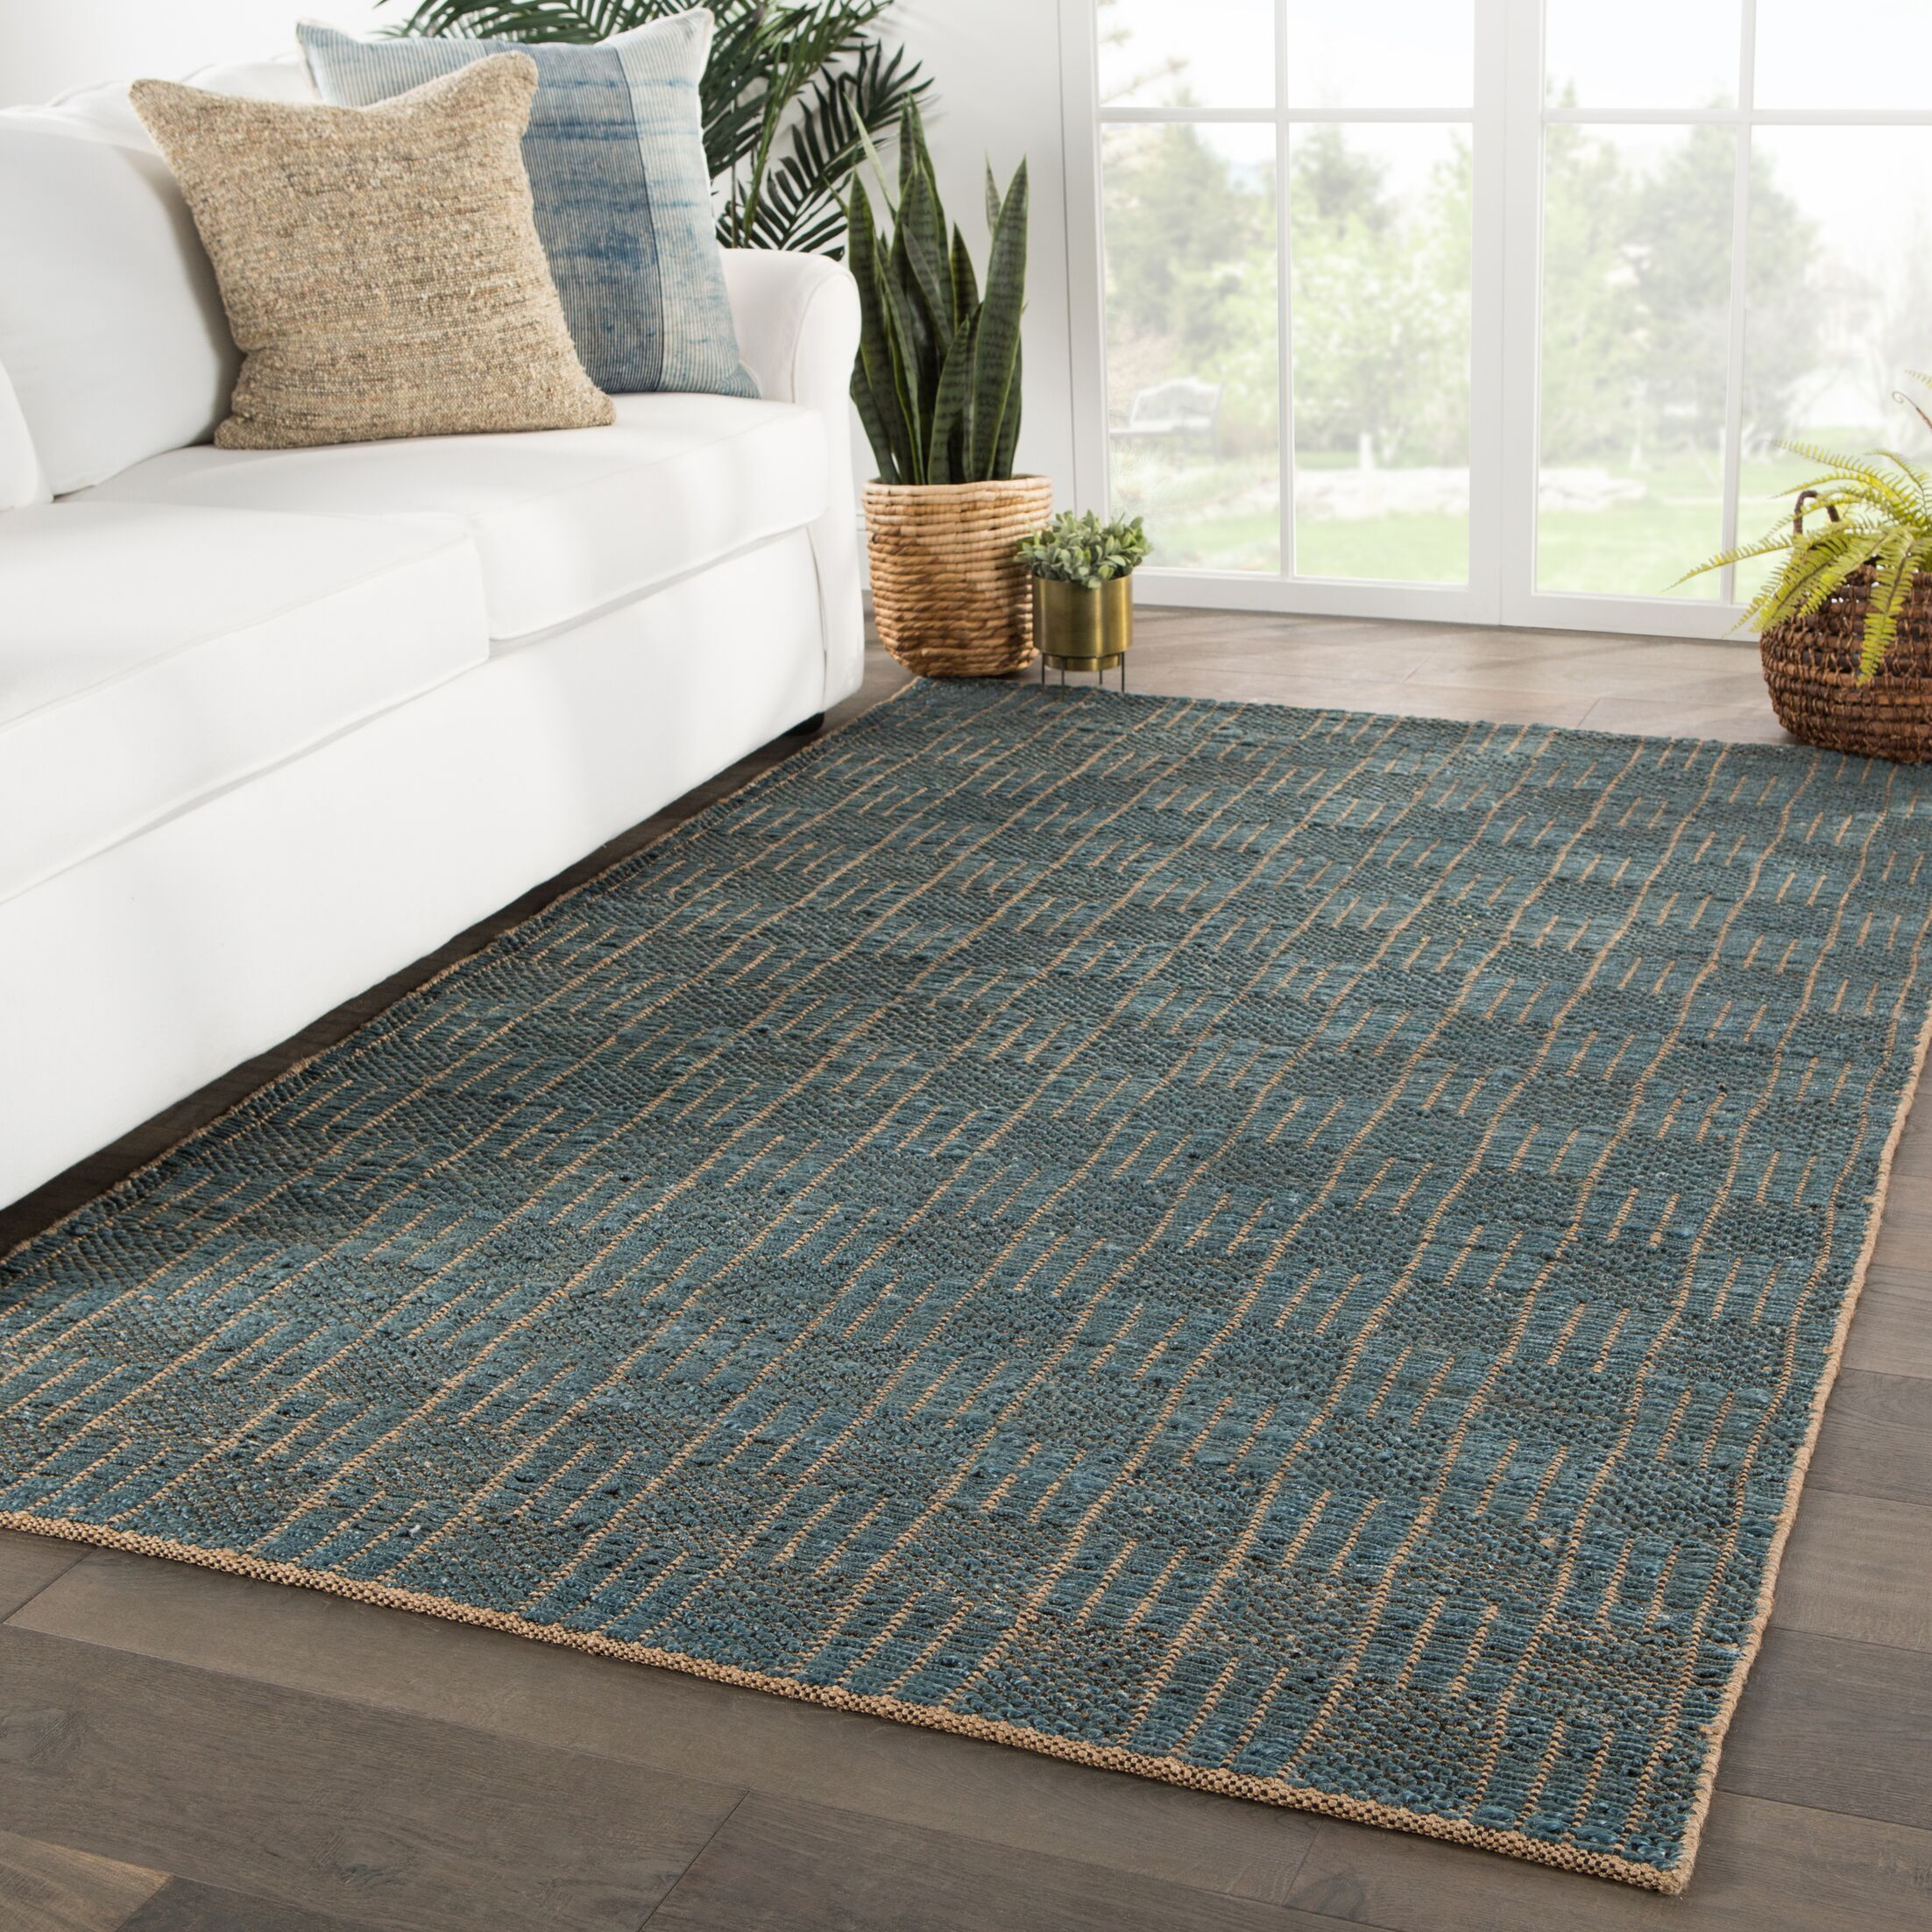 Fargo Natural Geometric Handwoven Flatweave Beige/Blue Area Rug Rug Size: Rectangle 5' x 8'